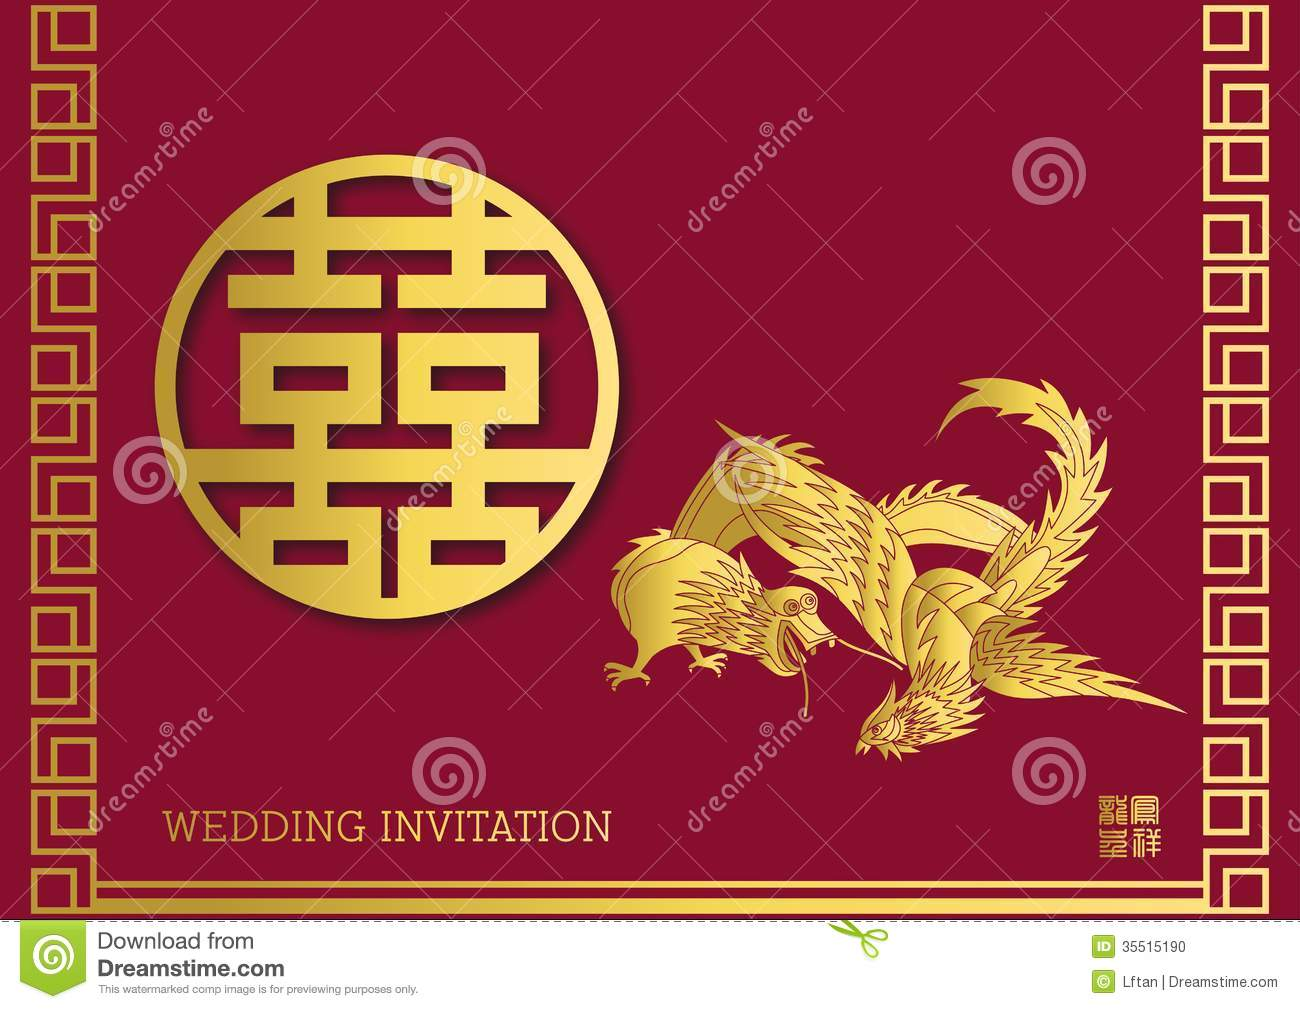 Wedding Invitation Card stock vector. Illustration of illustration ...